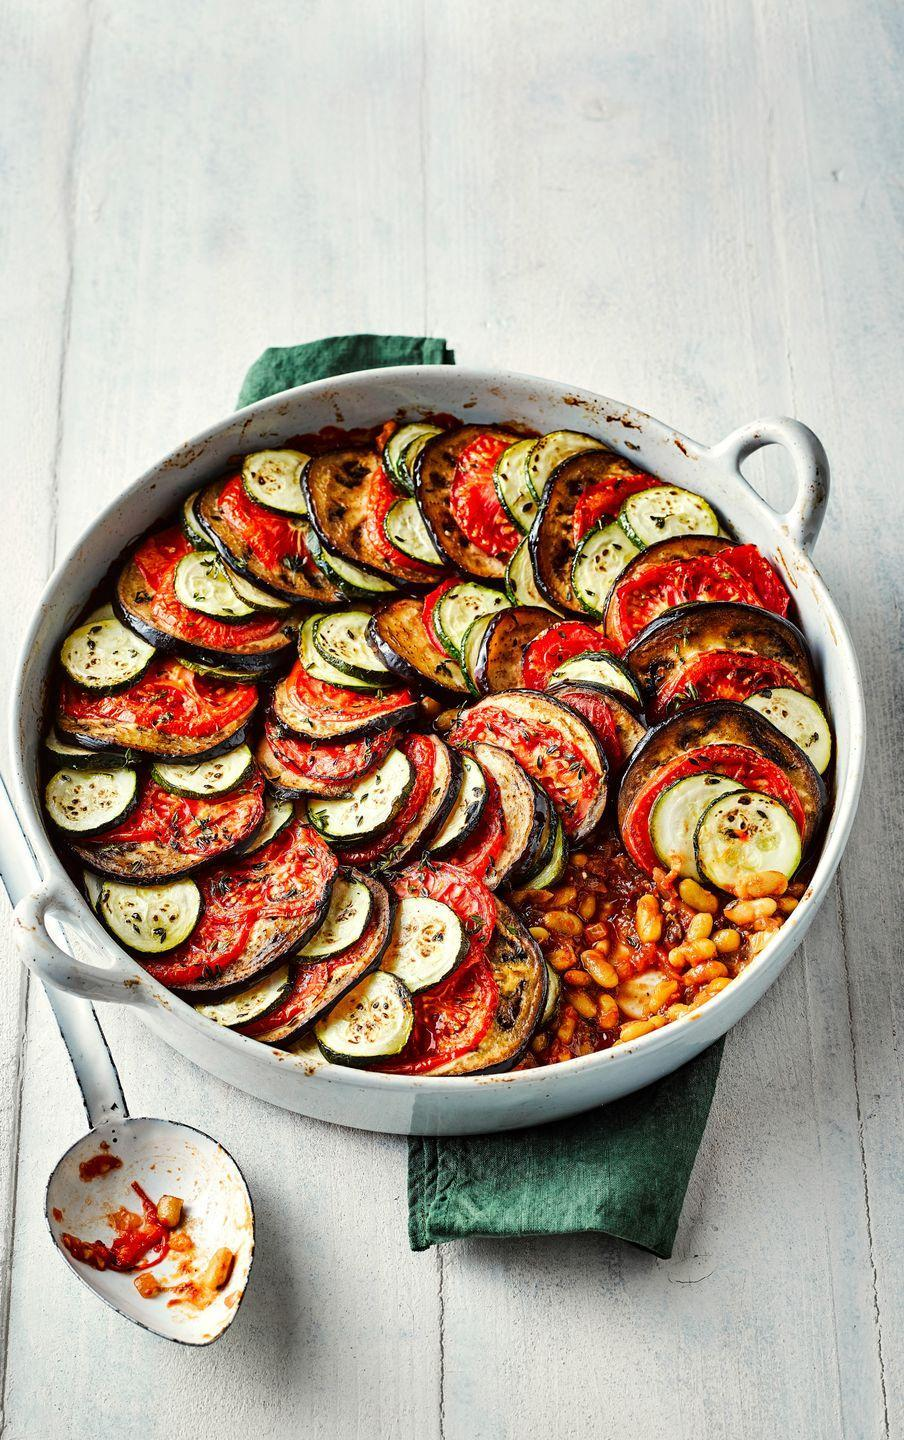 "<p>This vegan ratatouille recipe is a beautiful French dish, and the perfect midweek meal.</p><p><strong>Recipe: <a href=""https://www.goodhousekeeping.com/uk/food/recipes/a25935574/vegan-ratatouille/"" rel=""nofollow noopener"" target=""_blank"" data-ylk=""slk:Ratatouille"" class=""link rapid-noclick-resp"">Ratatouille </a></strong></p>"